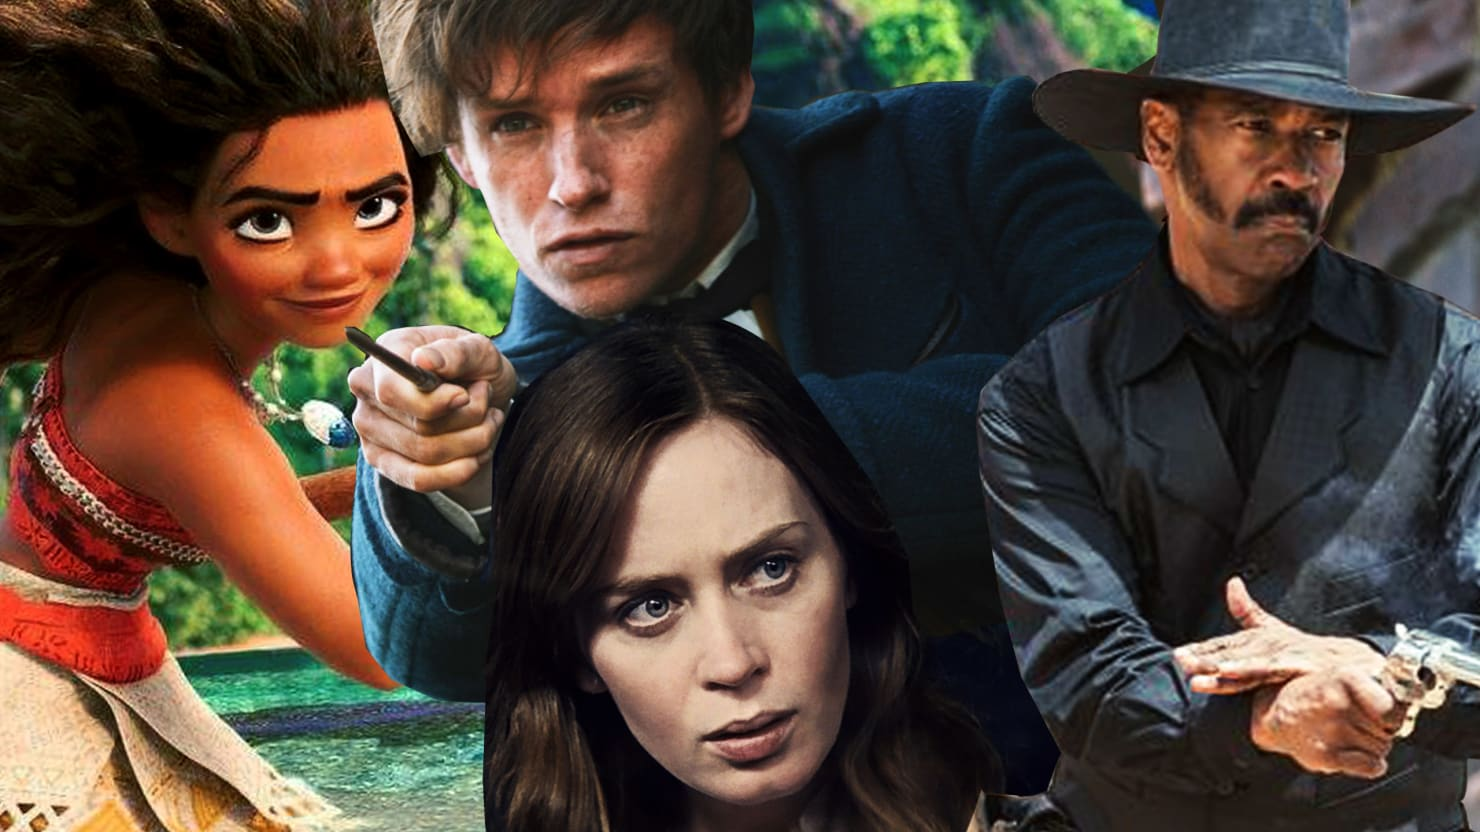 Fall 2016's Must-See Movies: Marvel Superheroes, Brad Pitt's Sexy Spy, and J.K. Rowling's Return